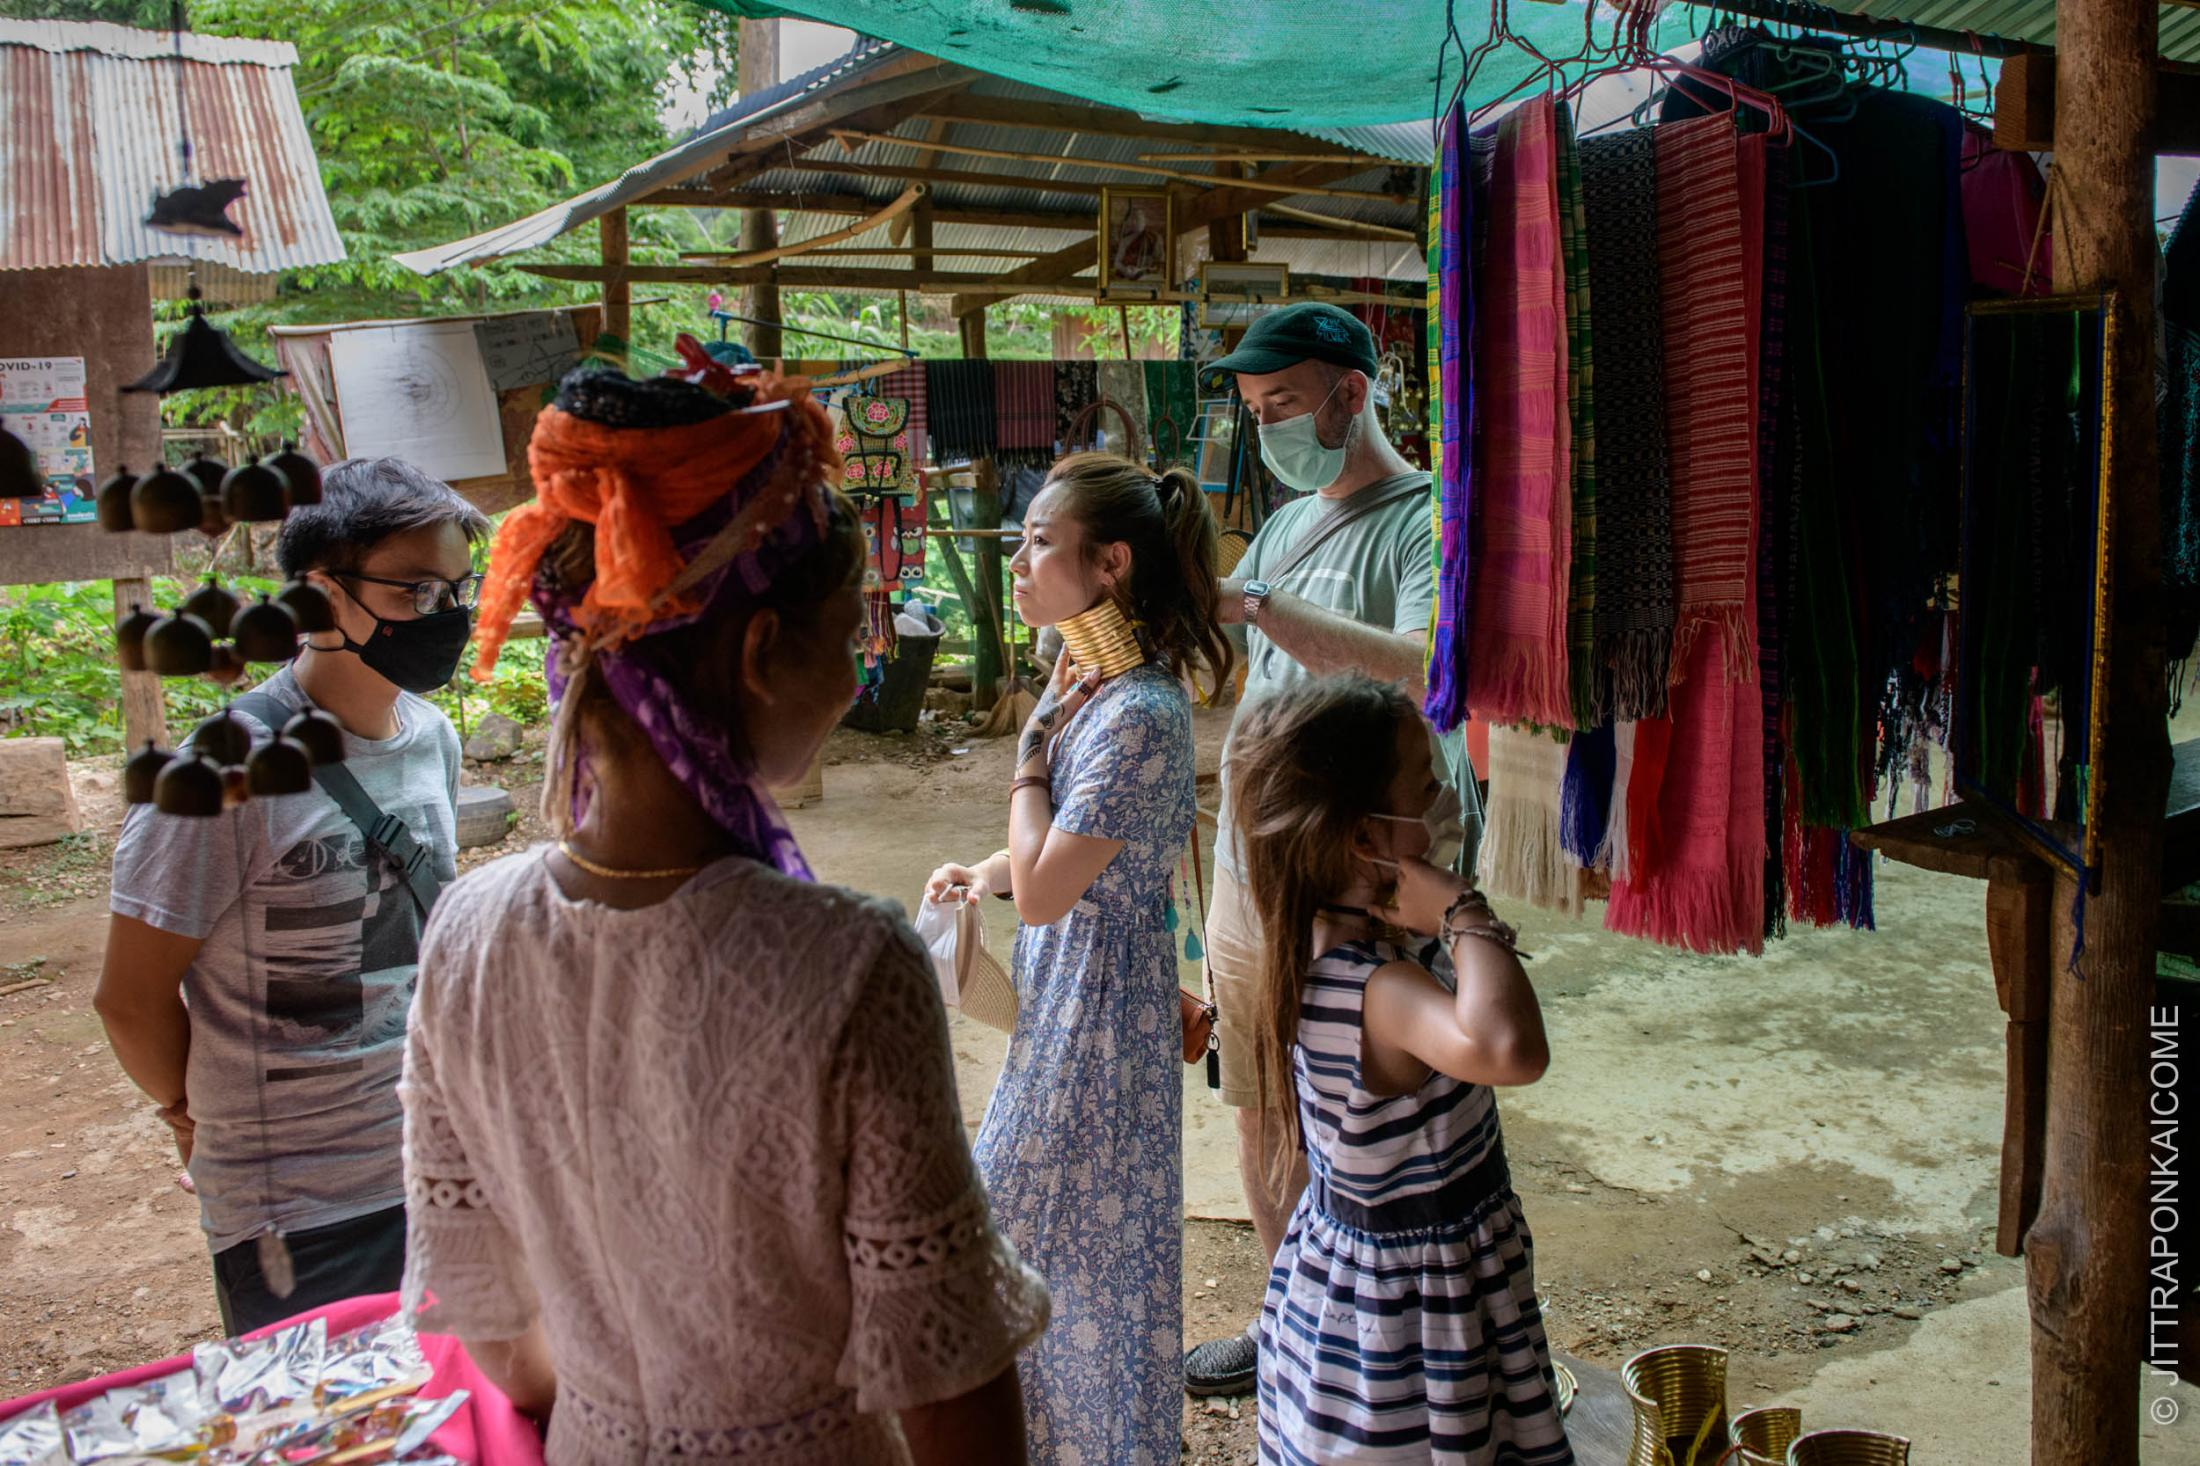 Since the Long Neck village is re-opened for visitors in June after the lockdown in early 2020, it can hardly earn money due to only a few domestic tourists visiting each day that comes with a small chance of purchasing souvenir items. Mae Hong Son, Thailand.